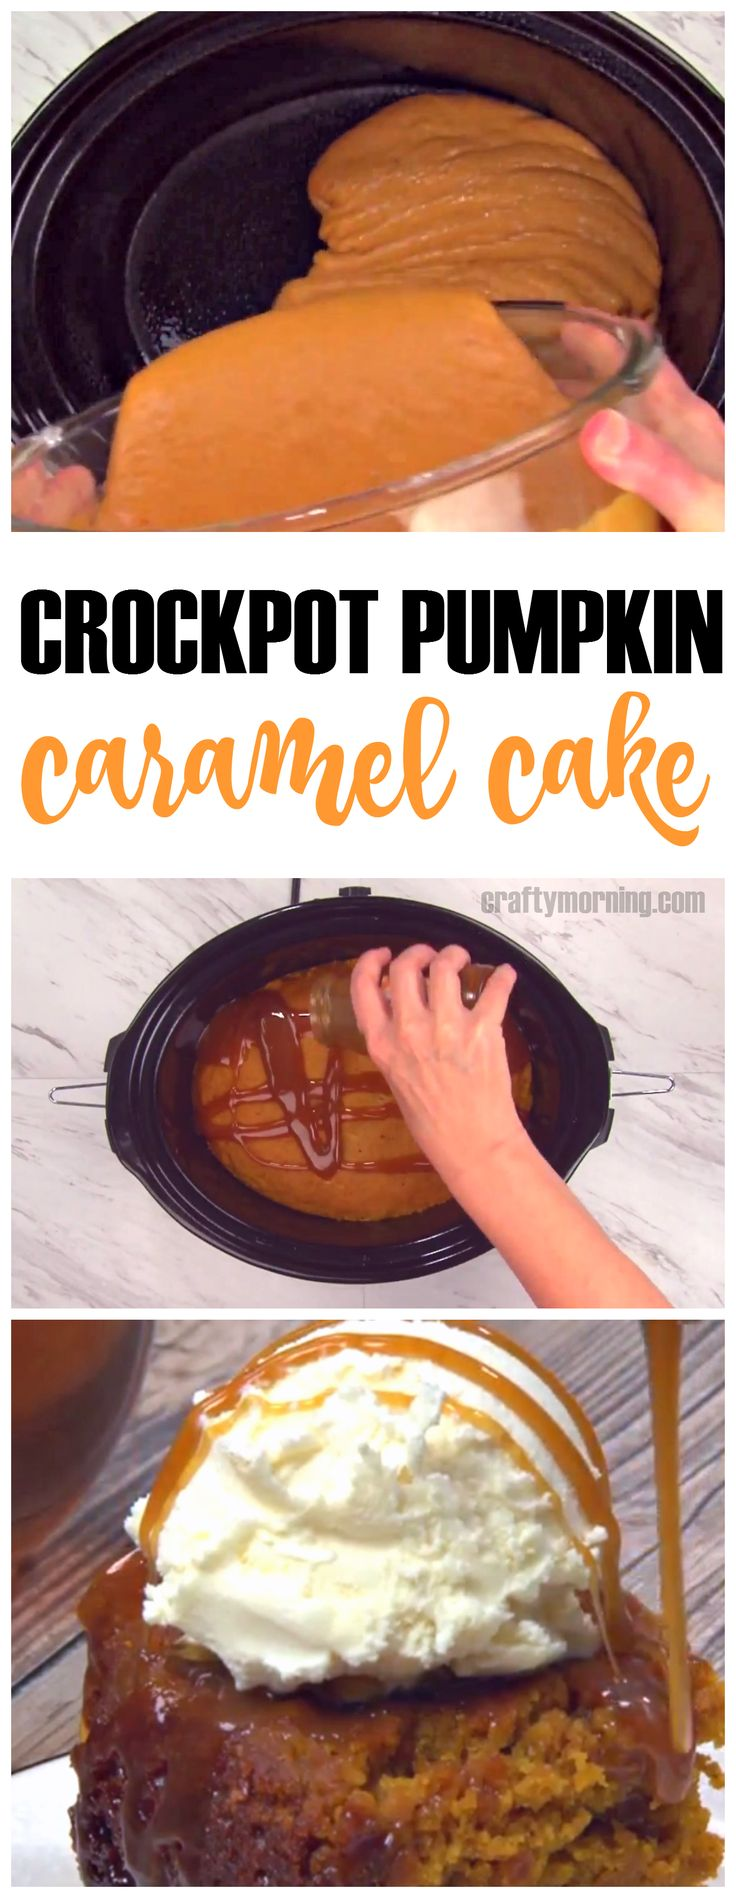 Crockpot pumpkin caramel cake recipe...this fall dessert is so easy and yummy!!